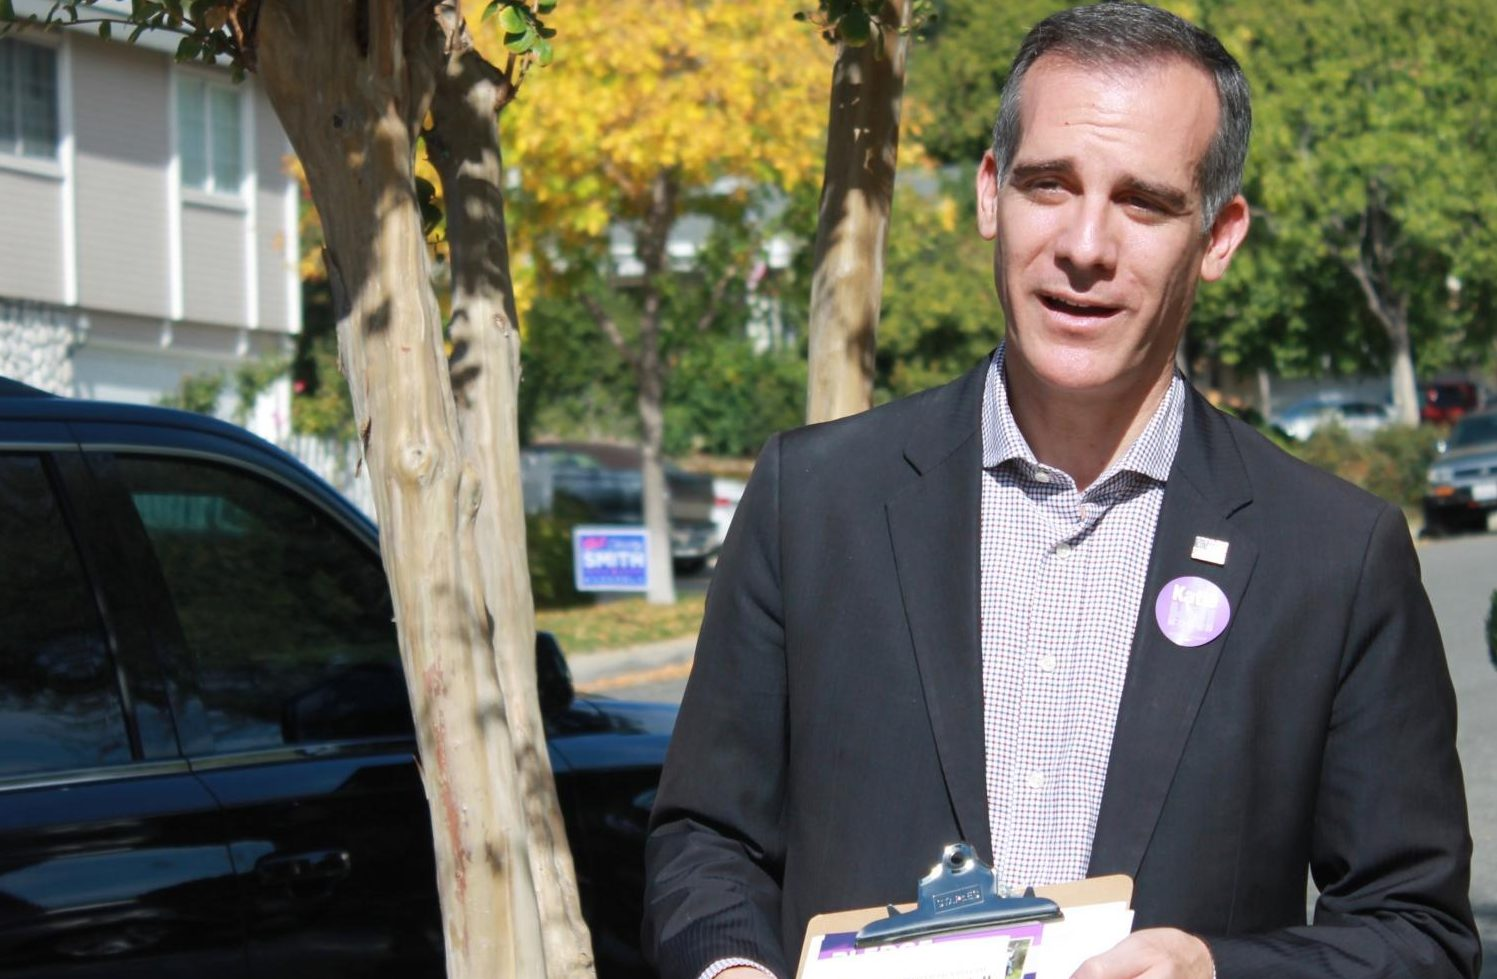 INVOLVED:    Mayor Eric Garcetti, campaigning Sunday in Santa Clarita for a Democratic candidate for Congress, said the synagogue shooting in Pittsburgh should not make Jewish teenagers live in fear but rather build bridges with other groups.